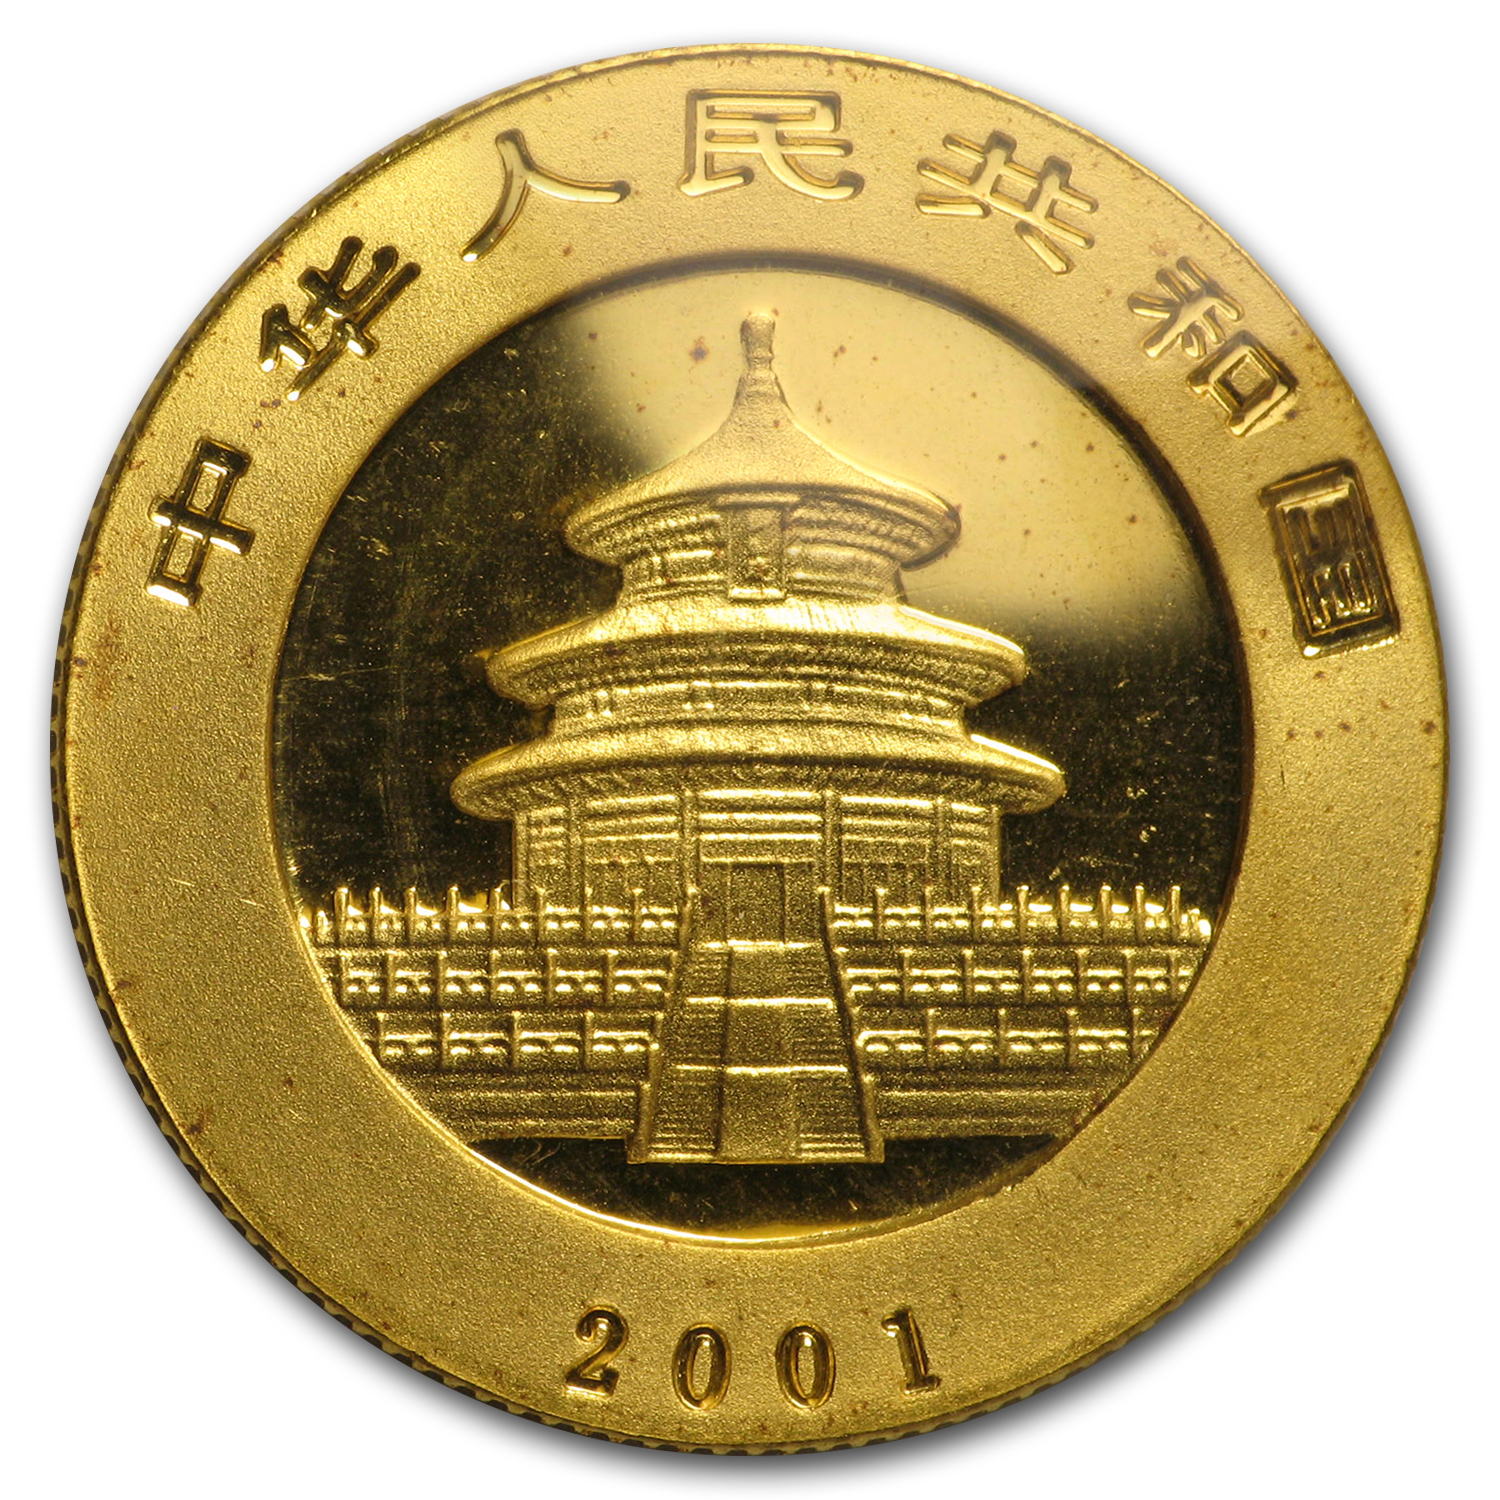 2001 1/4 oz Gold Chinese Panda BU (Sealed)